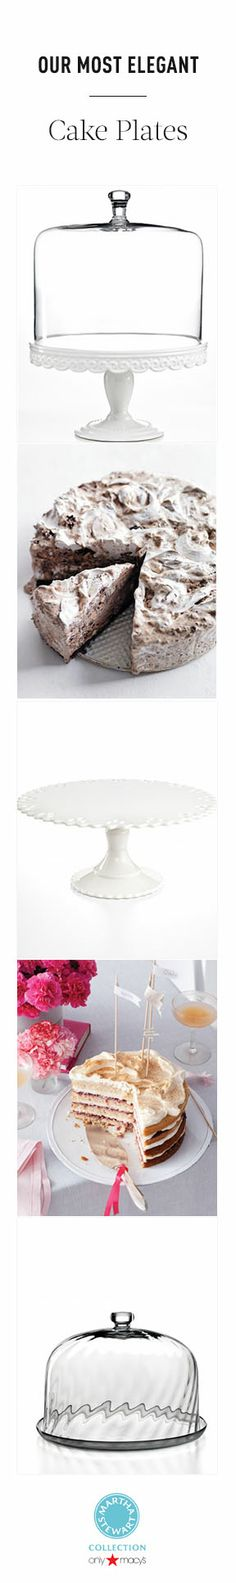 Our most elegant  cake stands from the Martha Stewart Collection at Macy's